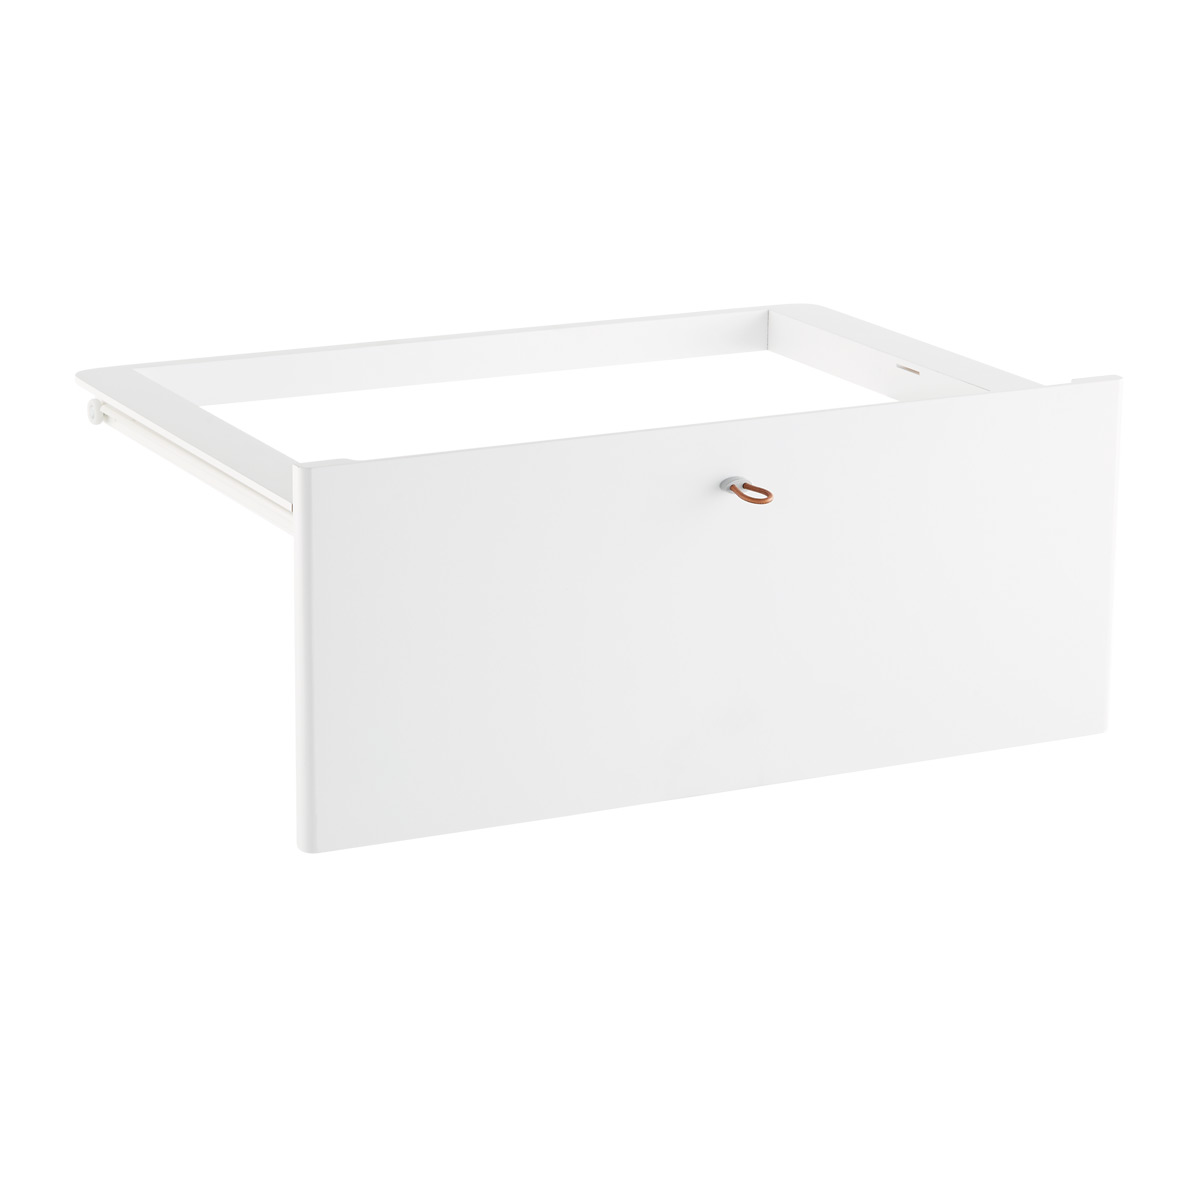 White drawer front Elfa Décor White Elfa Décor Drawer Frames Fronts The Container Store White Elfa Décor Drawer Frames Fronts The Container Store